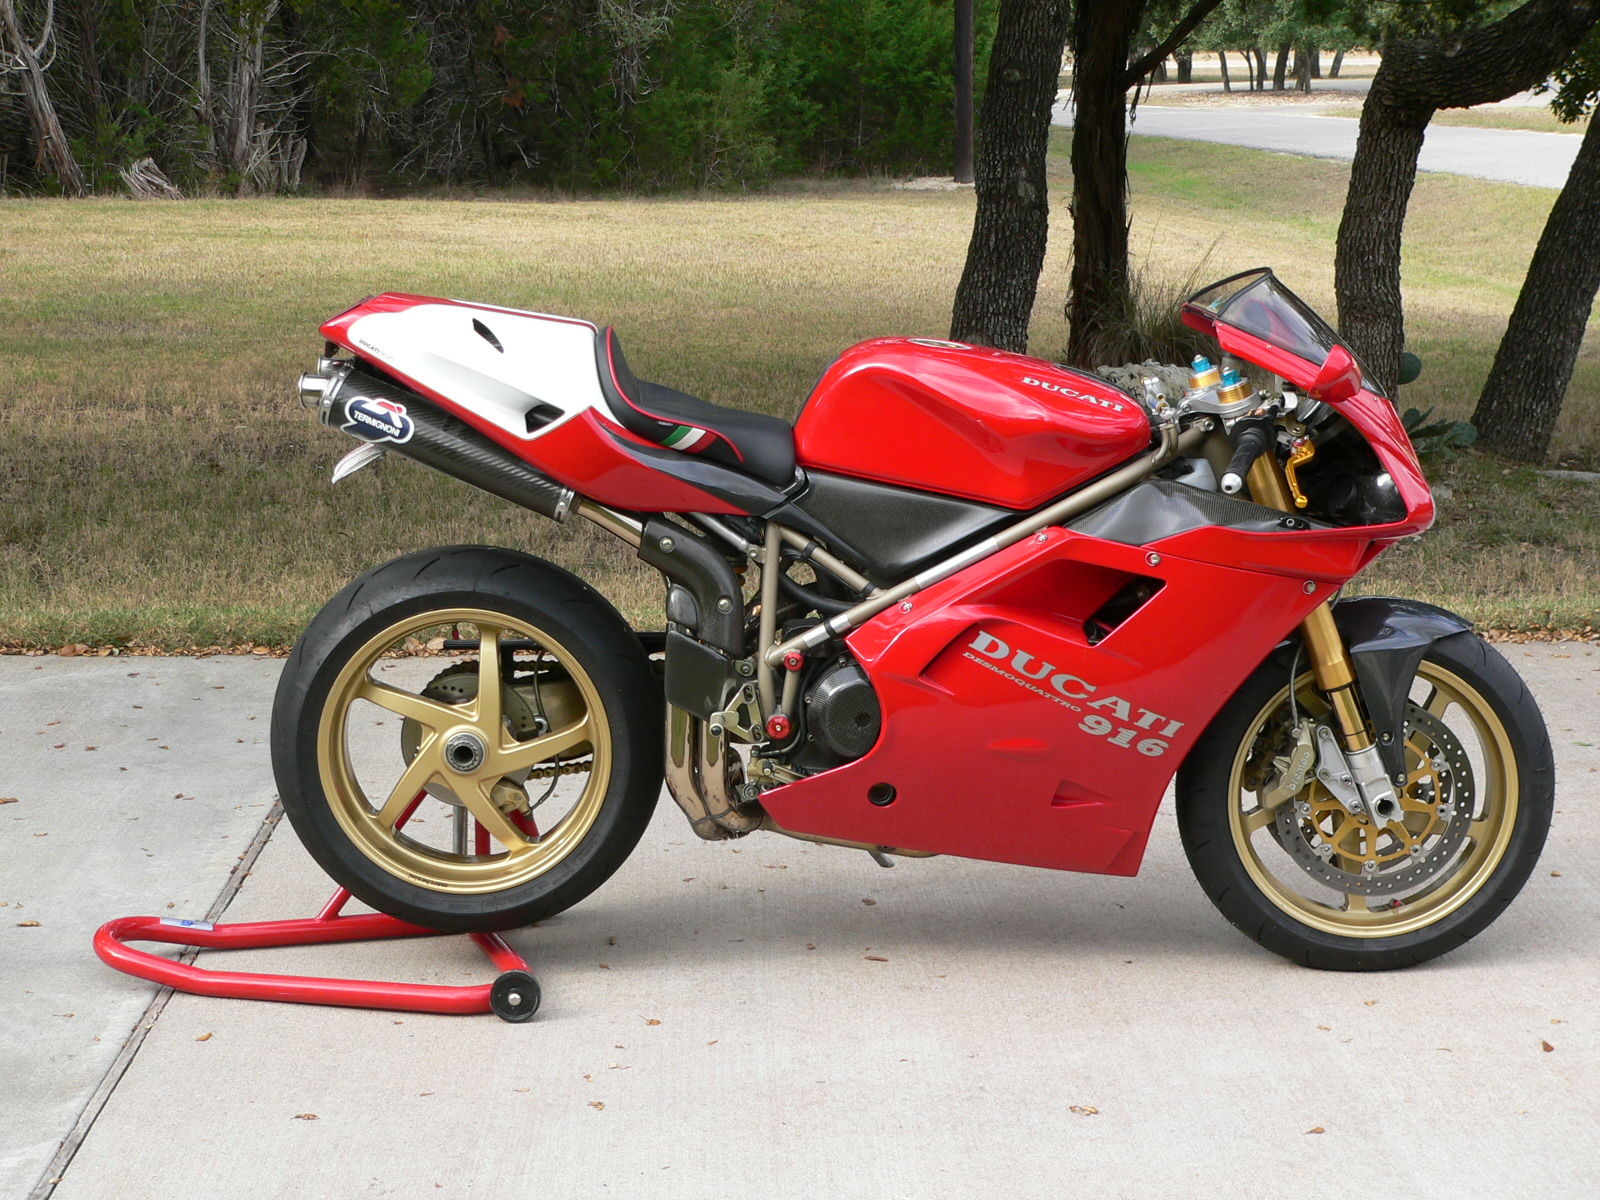 World's most beautiful motorcycle: Ducati's 916 celebrated